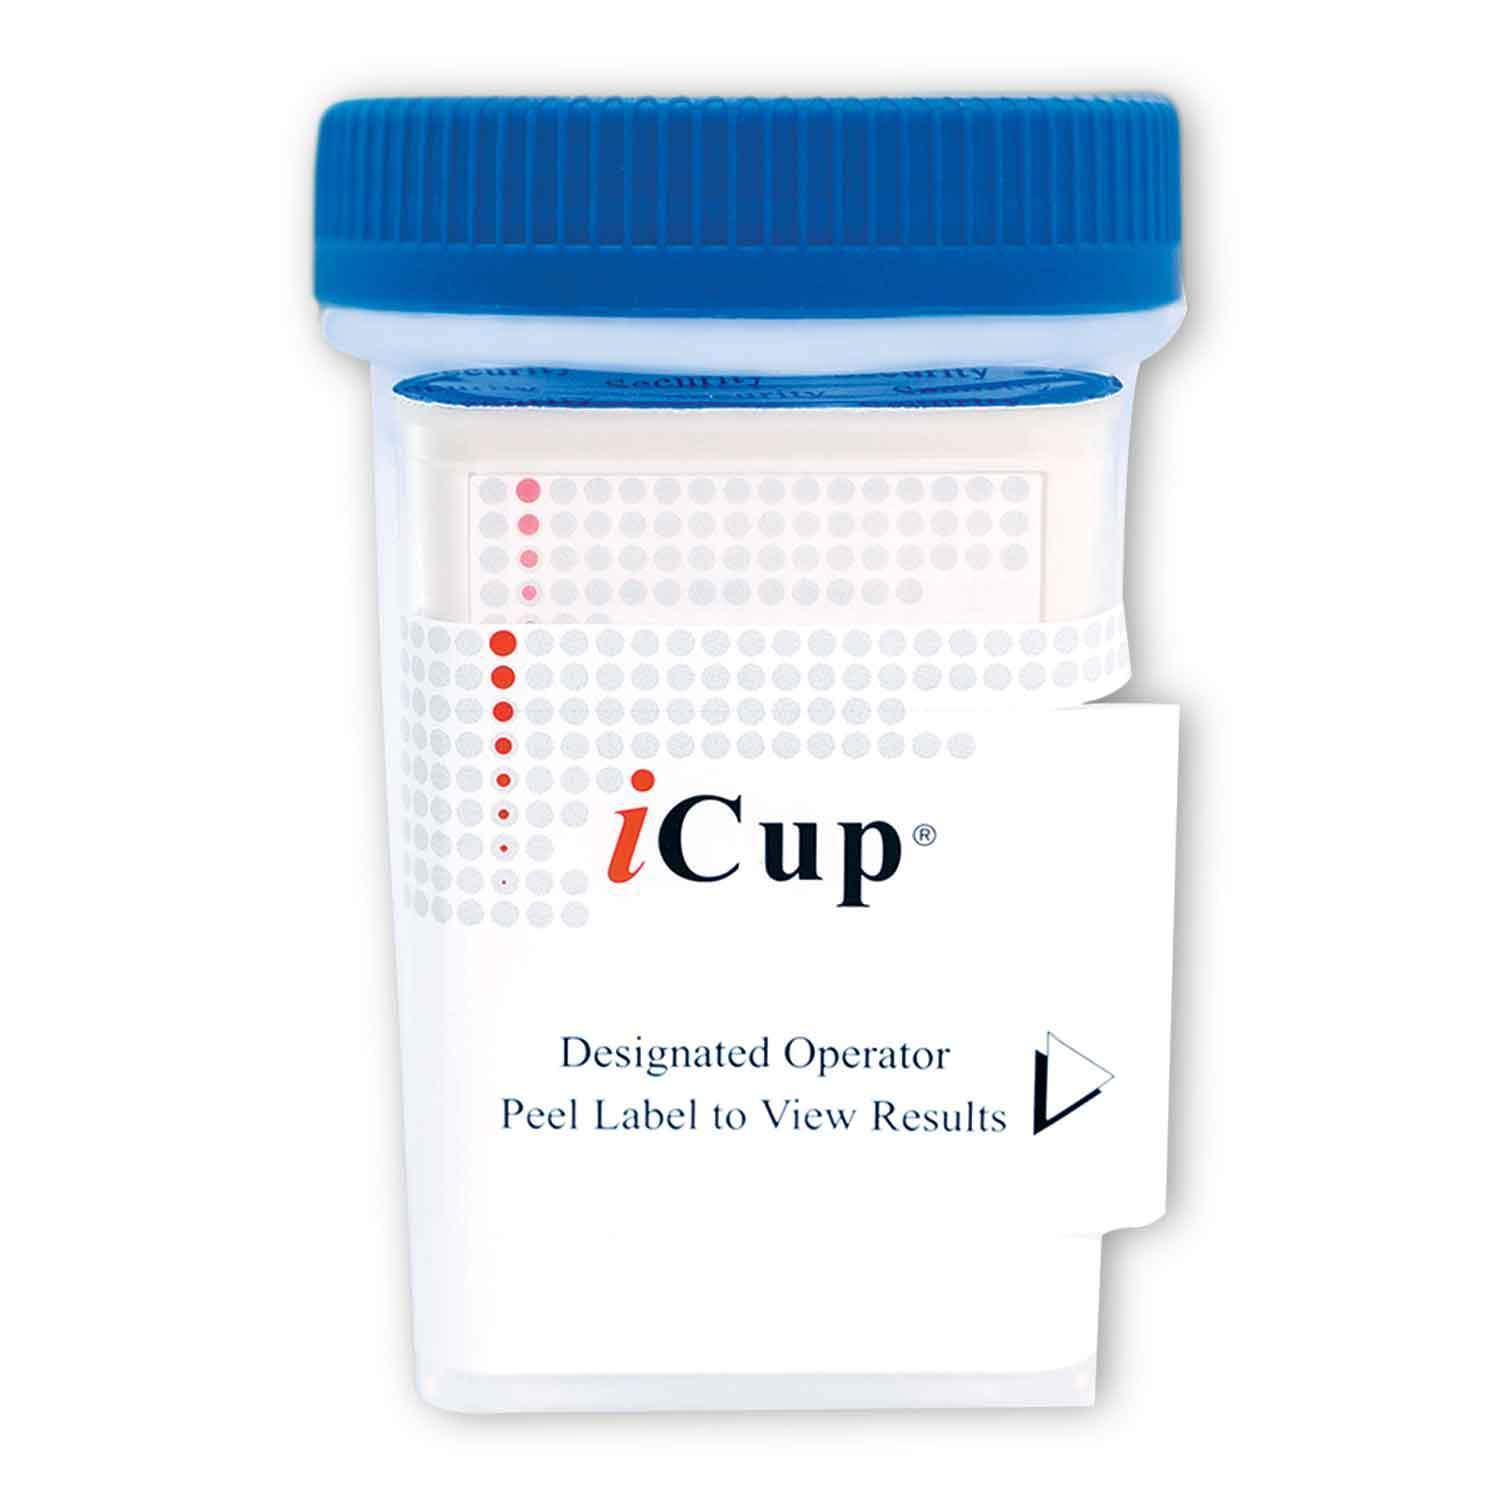 12 Panel iCup Urine Drug Test Cup with Adulterants